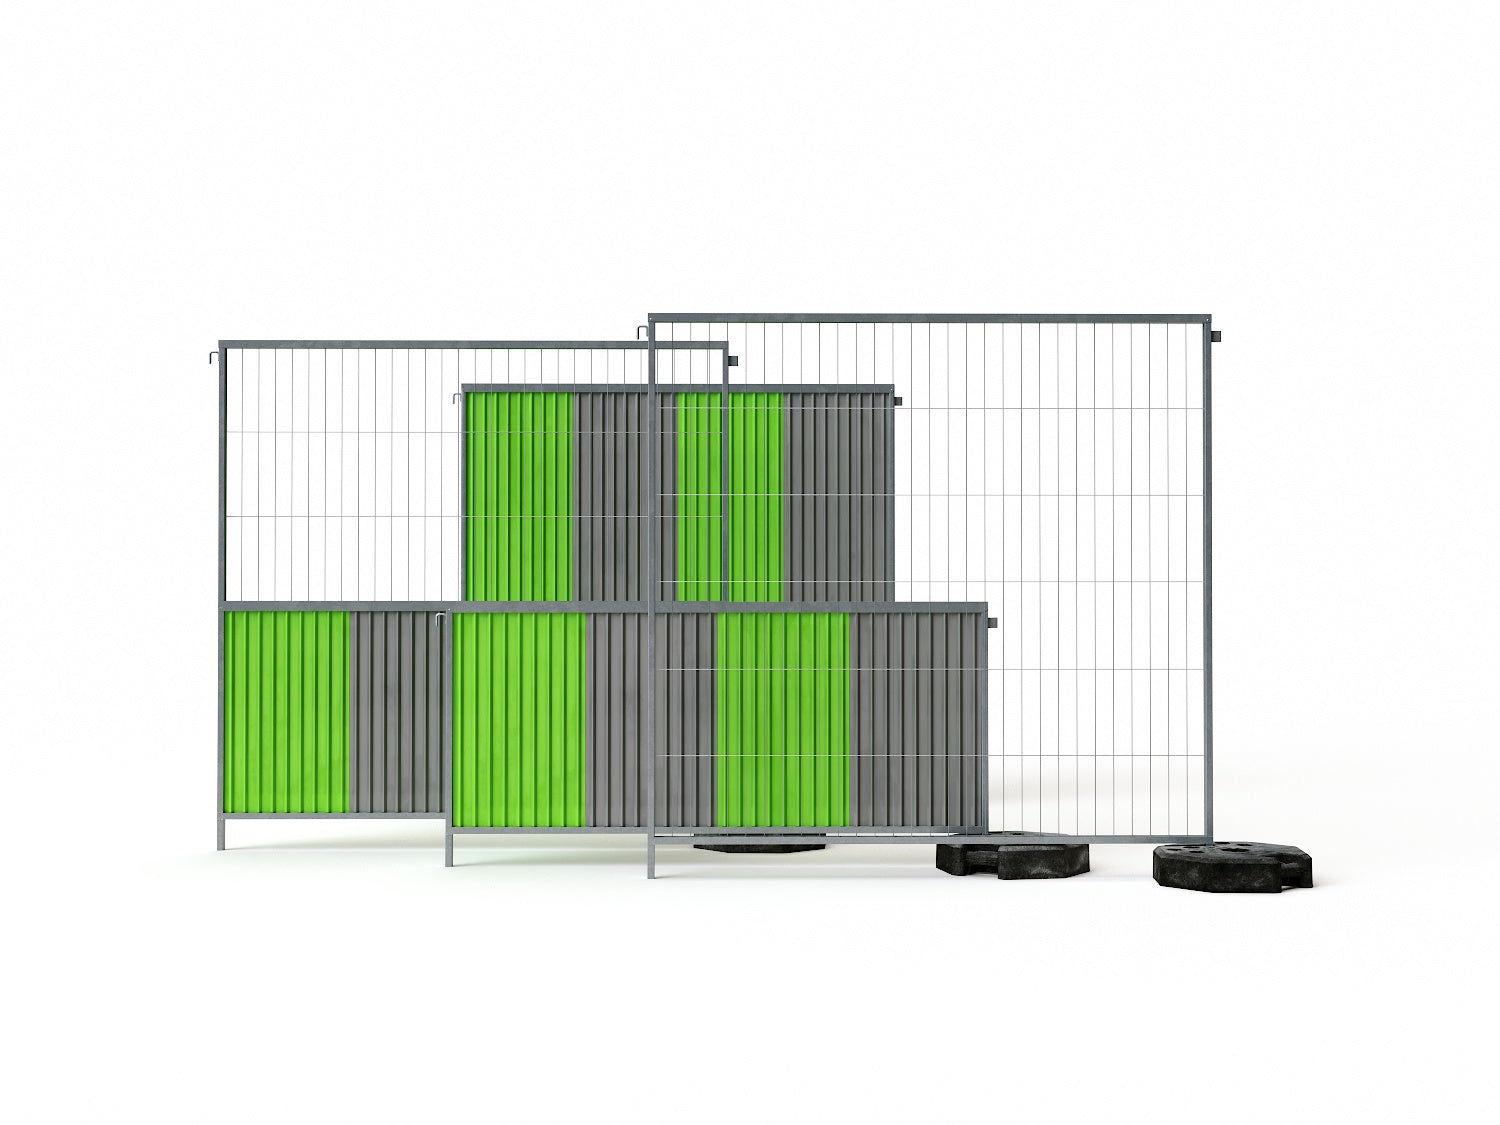 Parisian Mobile Fence - Nouvelle Mesure Lab